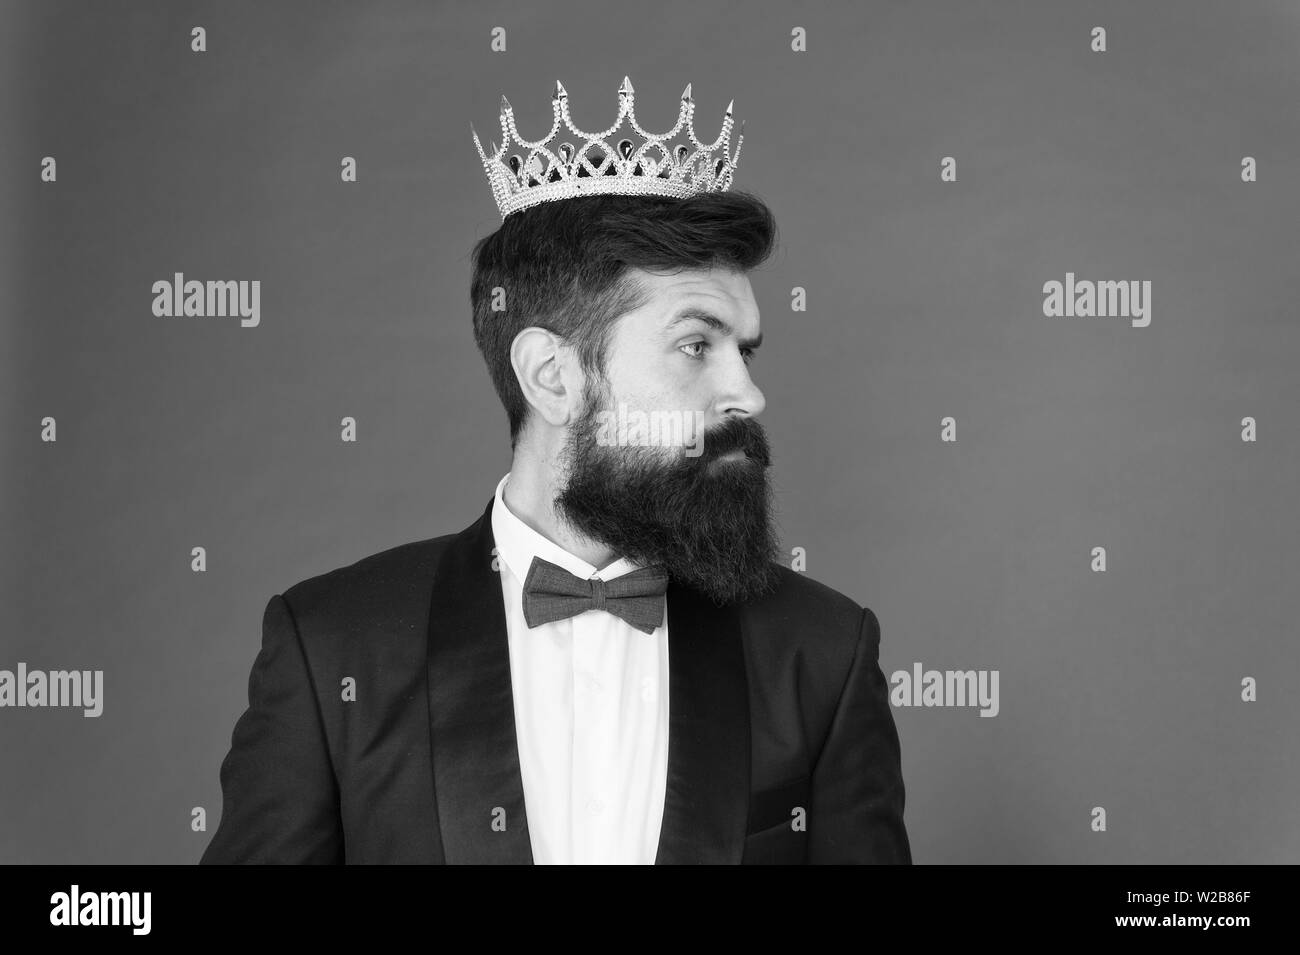 vip. Big boss. Formal event. King crown. Formal wear male fashion. Egoist. Businessman in tailored tuxedo and crown. Vip man in suit. Bearded man in tuxedo and bow tie at vip party. vip client. - Stock Image